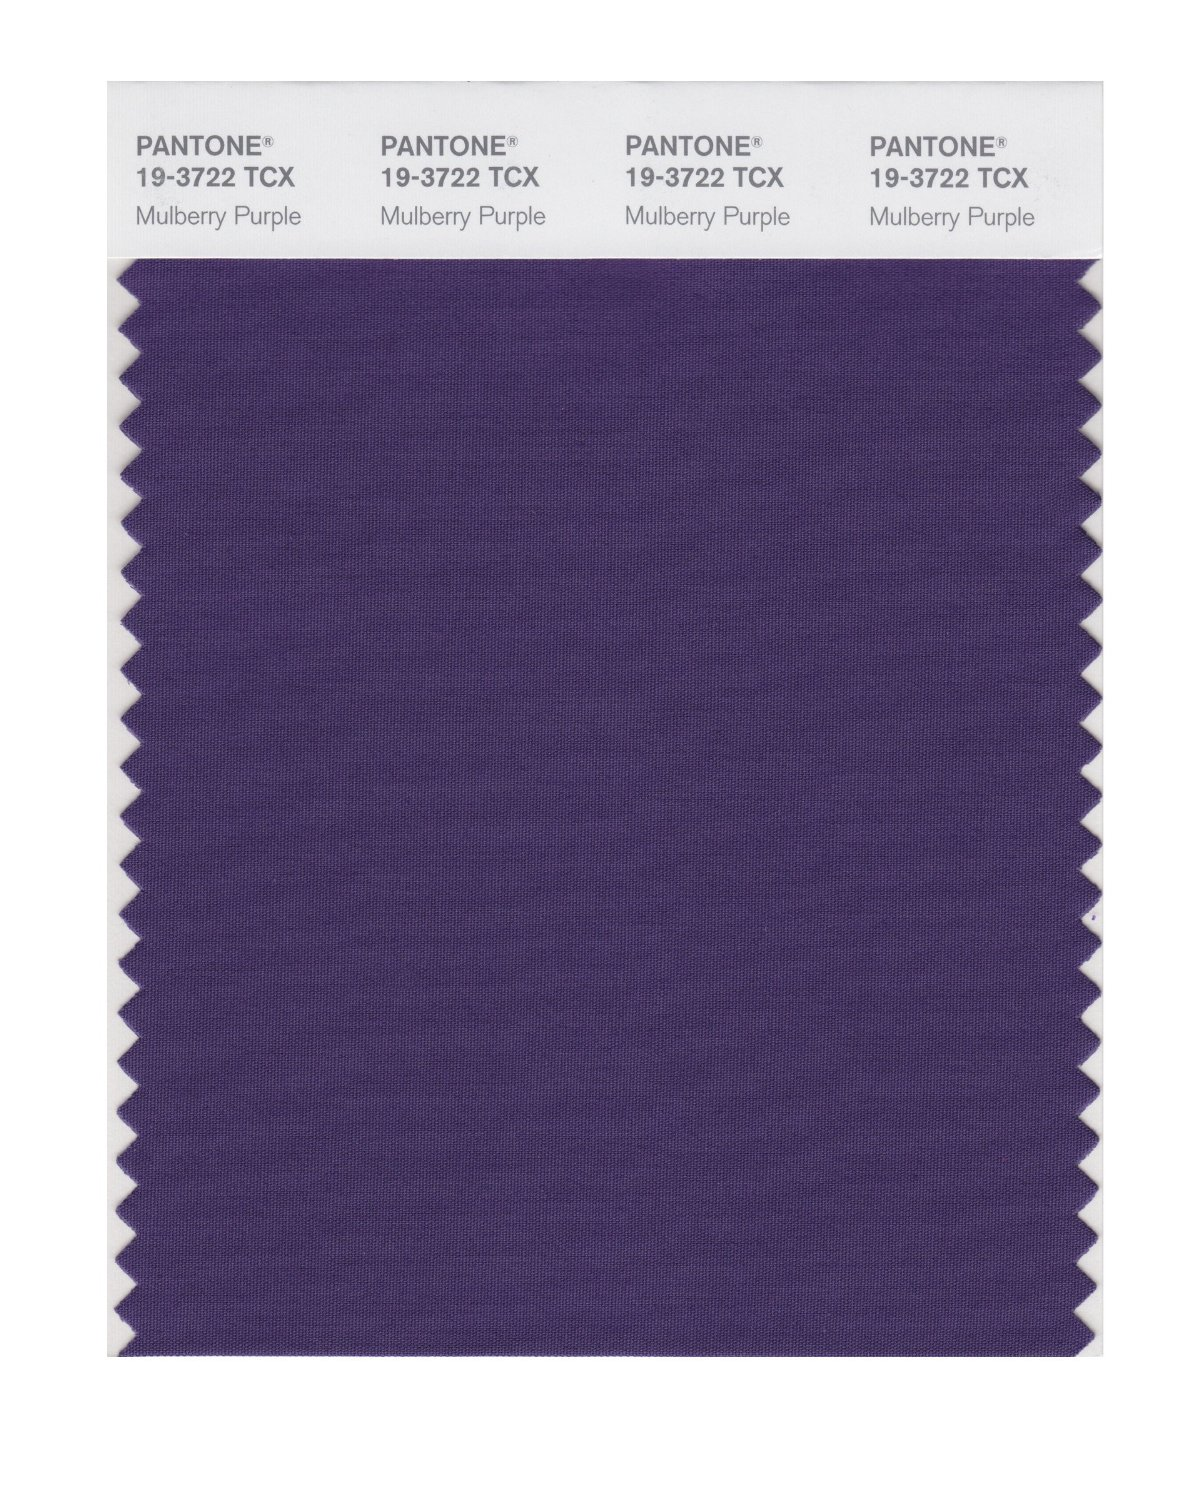 Pantone Smart Swatch 19-3722 Mulberry Purple